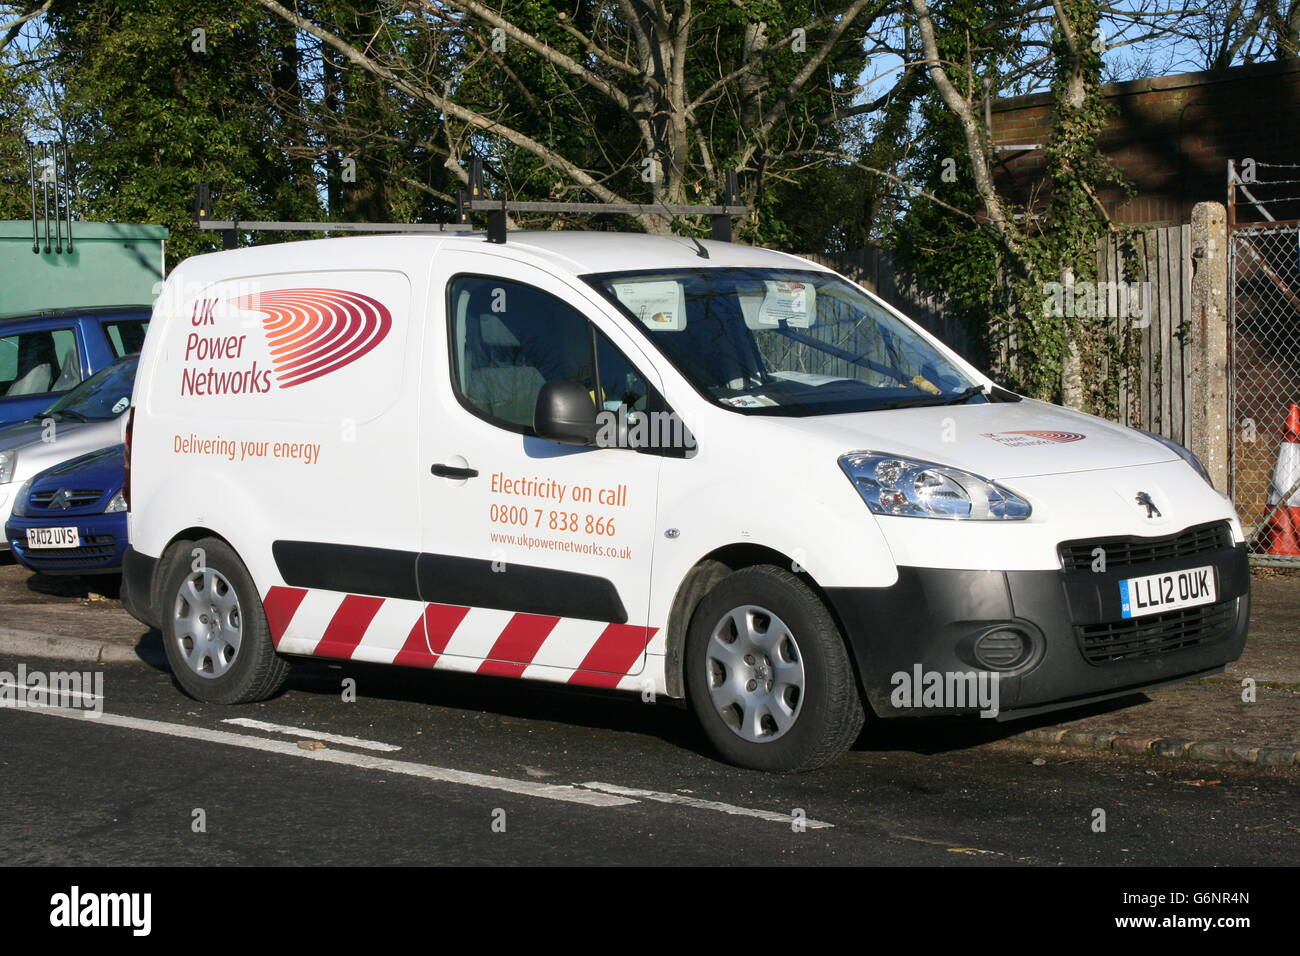 A SUNNY OFFSIDE VIEW OF A UK POWER NETWORKS SMALL PEUGEOT VAN - Stock Image